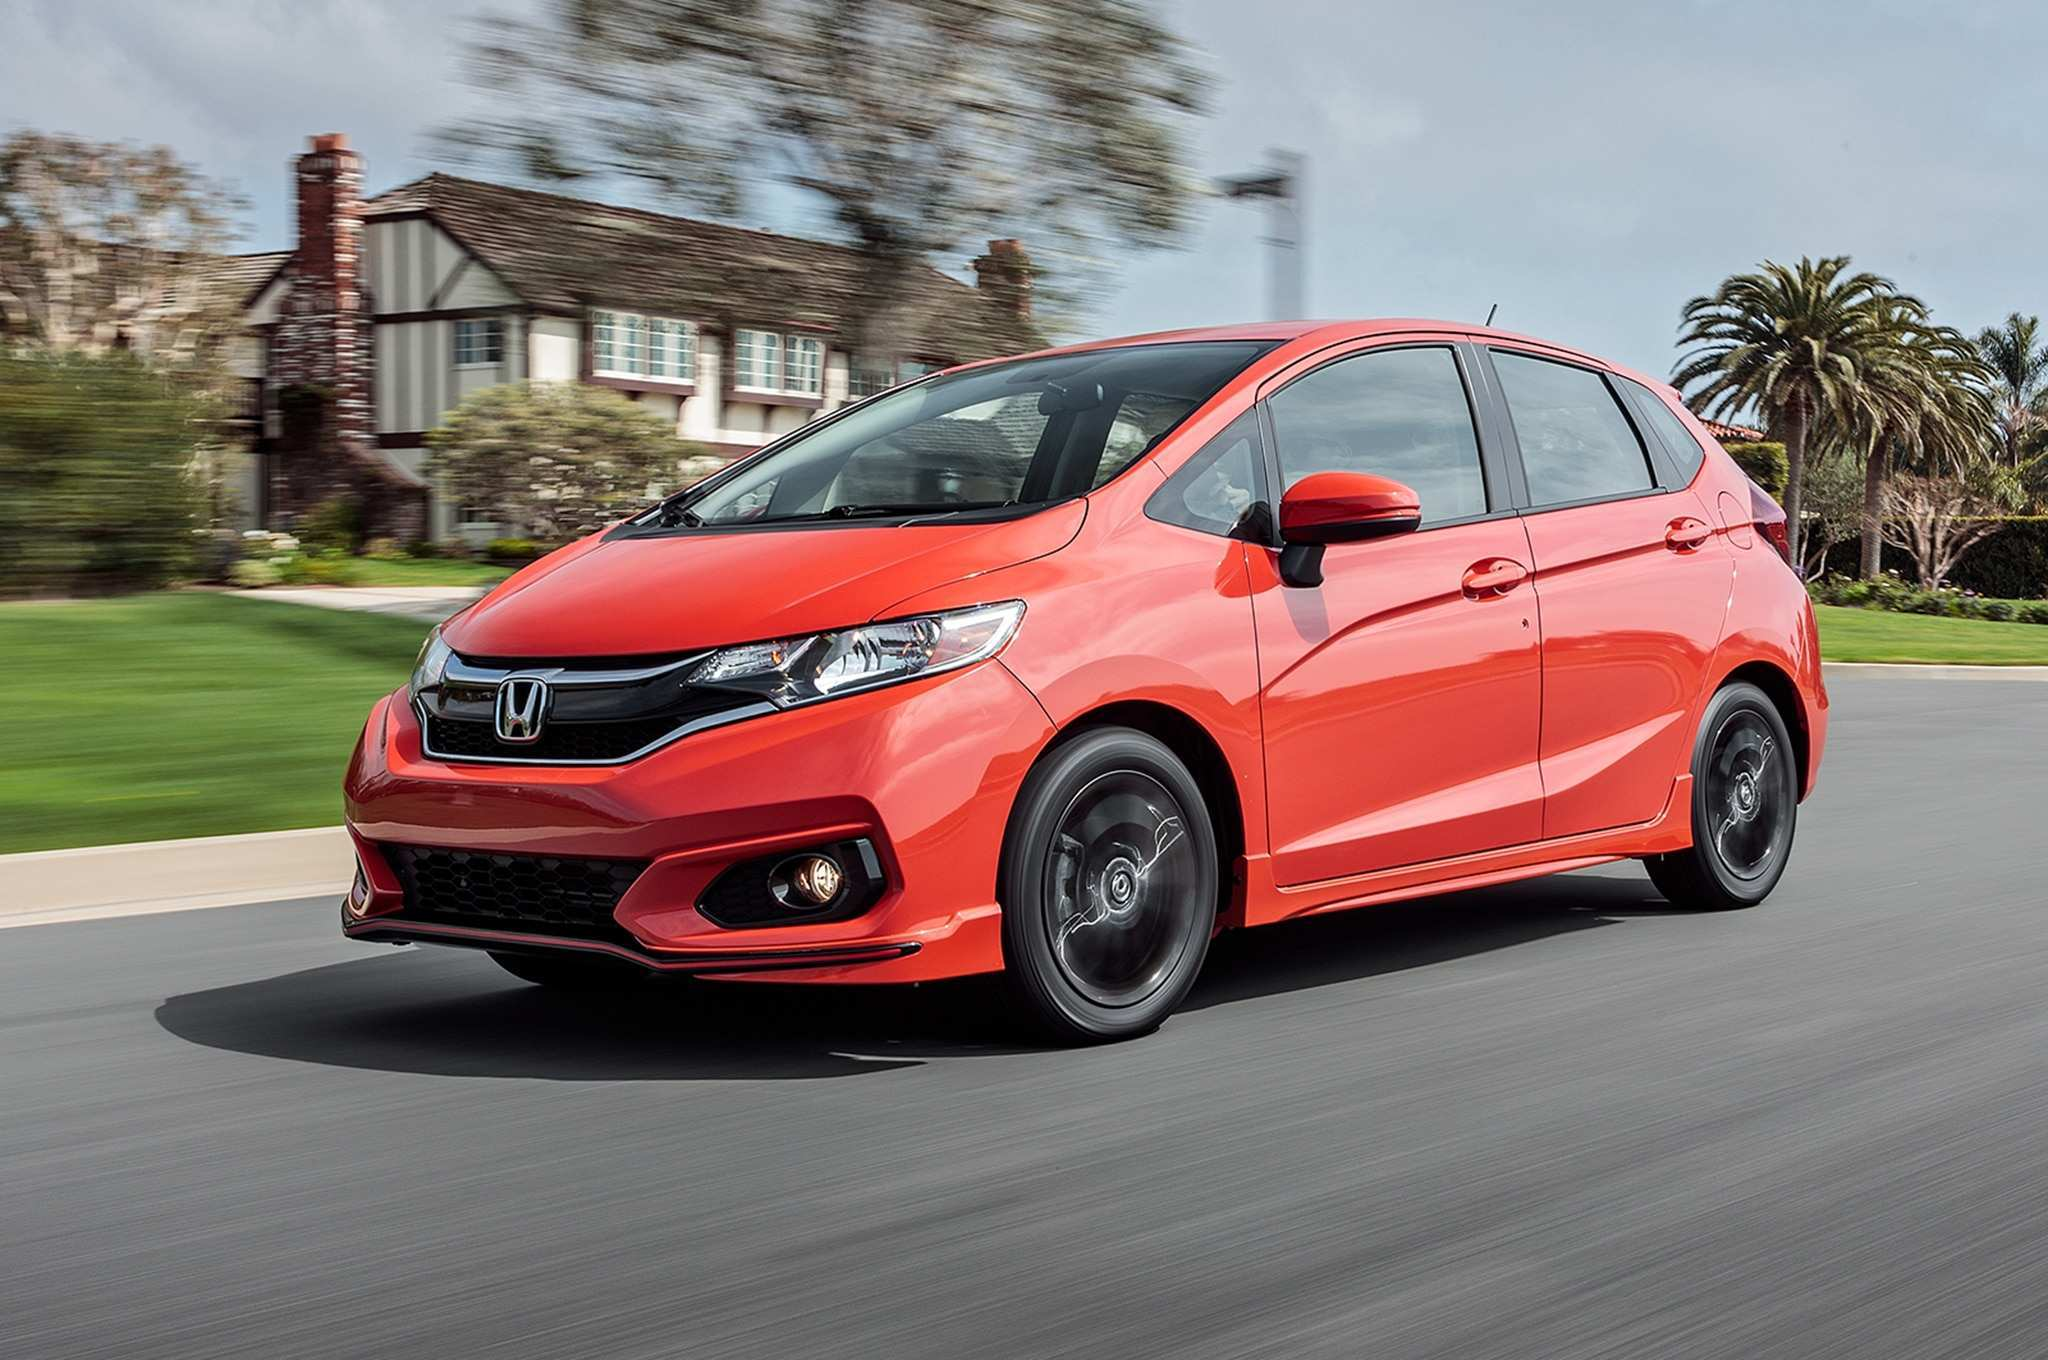 39 All New 2019 Honda Fit Rumors Release Date And Concept